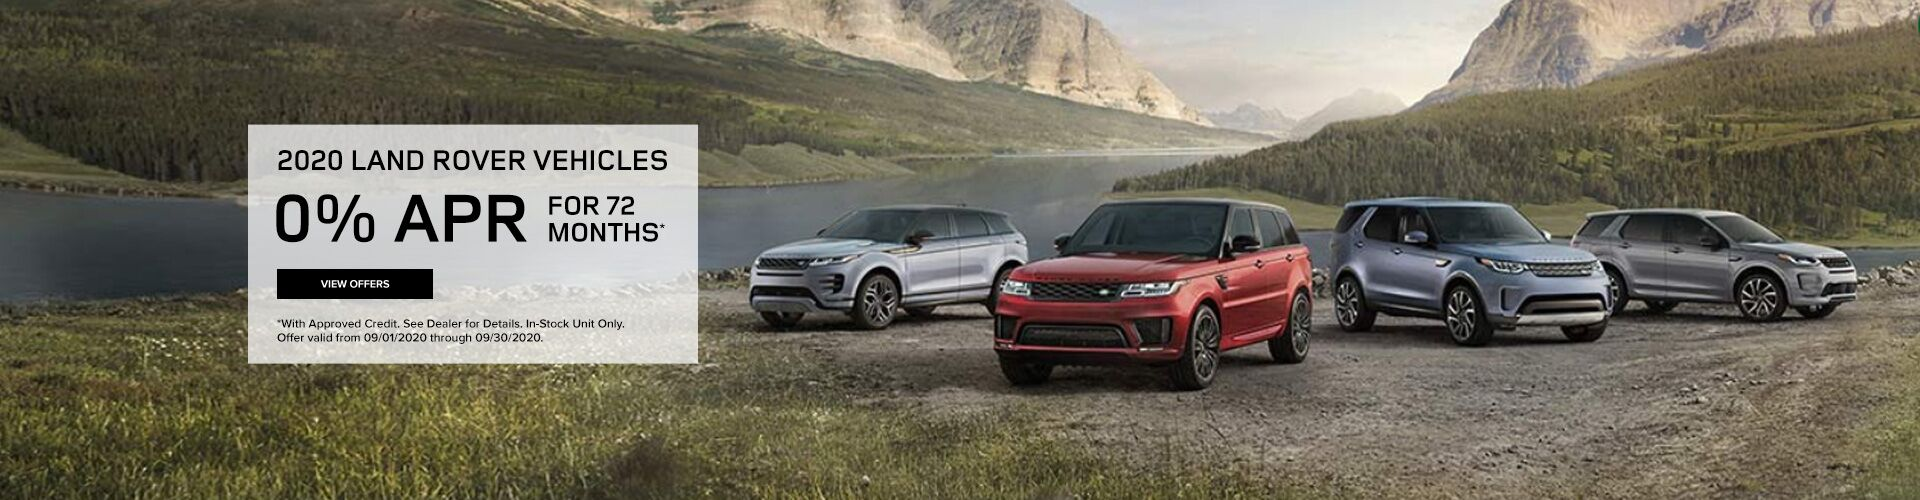 2020 Land Rover Vehicles